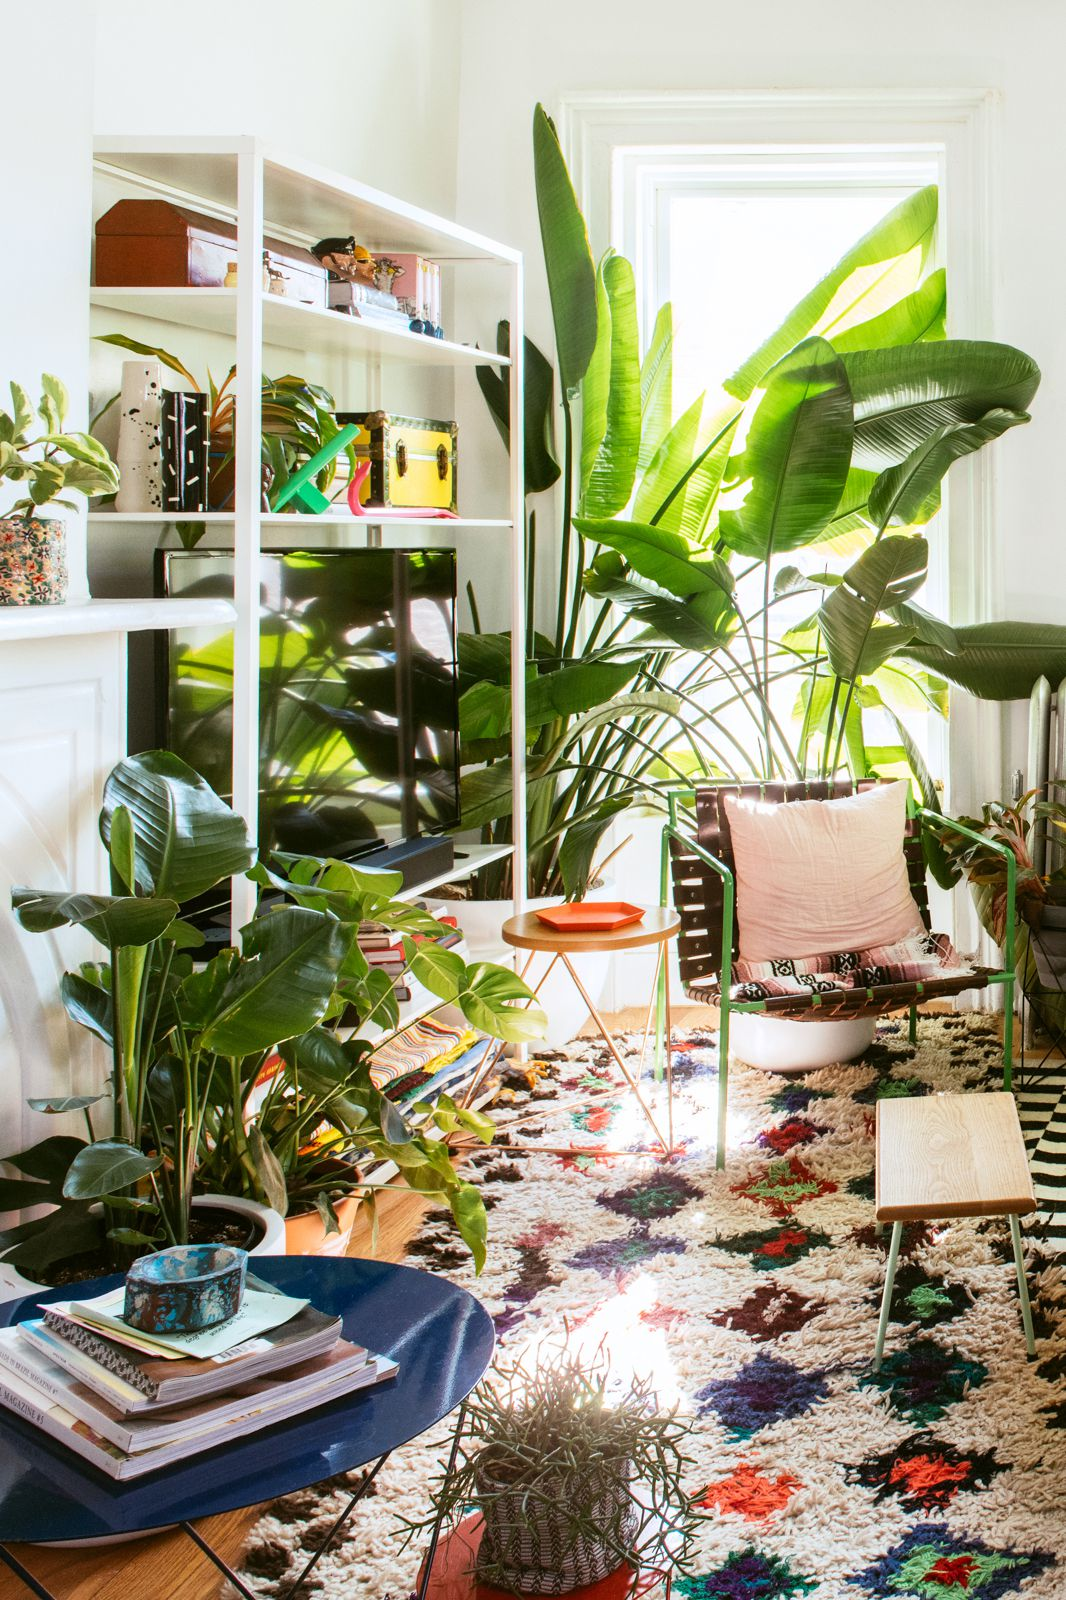 A living room with tall Birds of Paradise plants, a neon-green wiry chair, Moroccan rug, and knick knacks on a white shelf